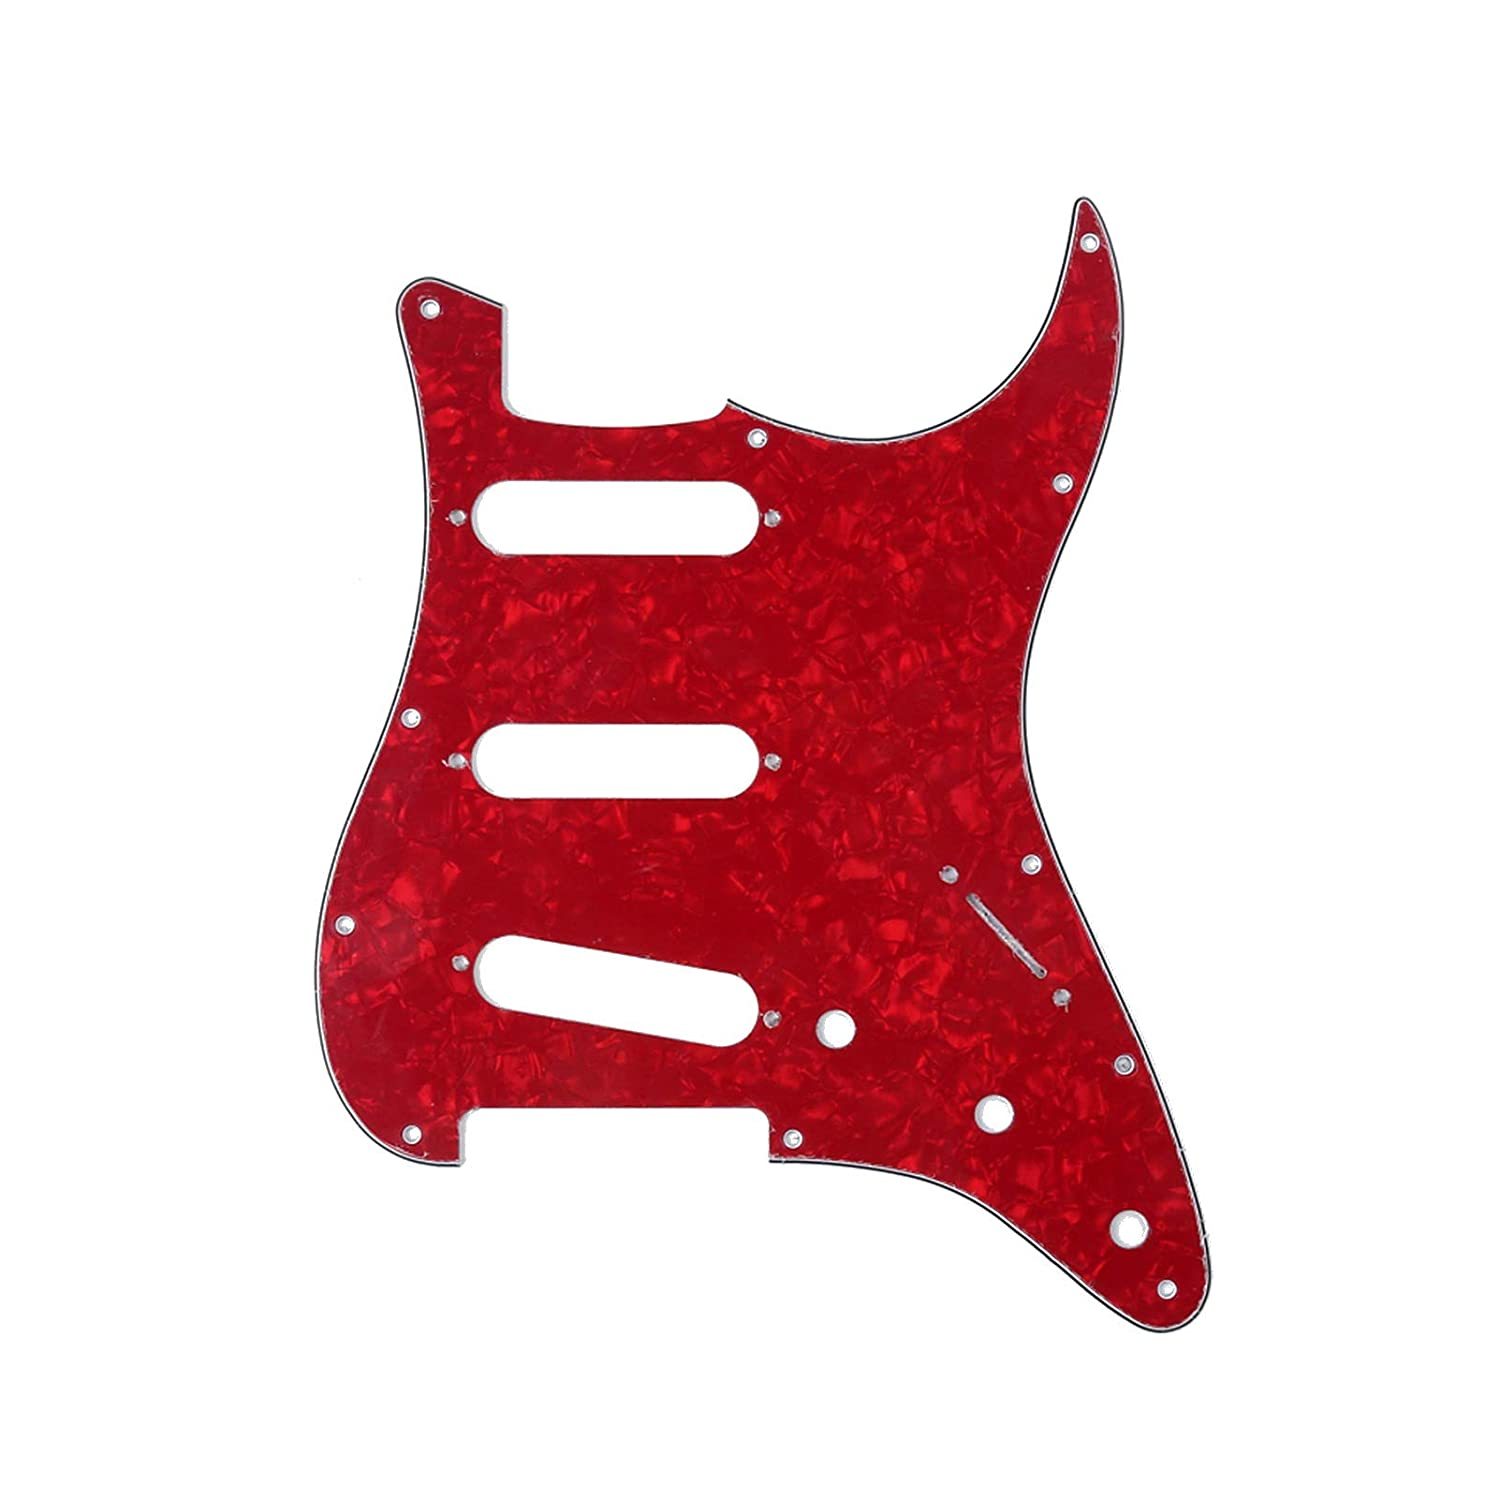 Musiclily SSS 11 Holes Strat Electric Guitar Pickguard for Fender US//Mexico Made Standard Stratocaster Modern Style Guitar Parts,4ply Pearl Green